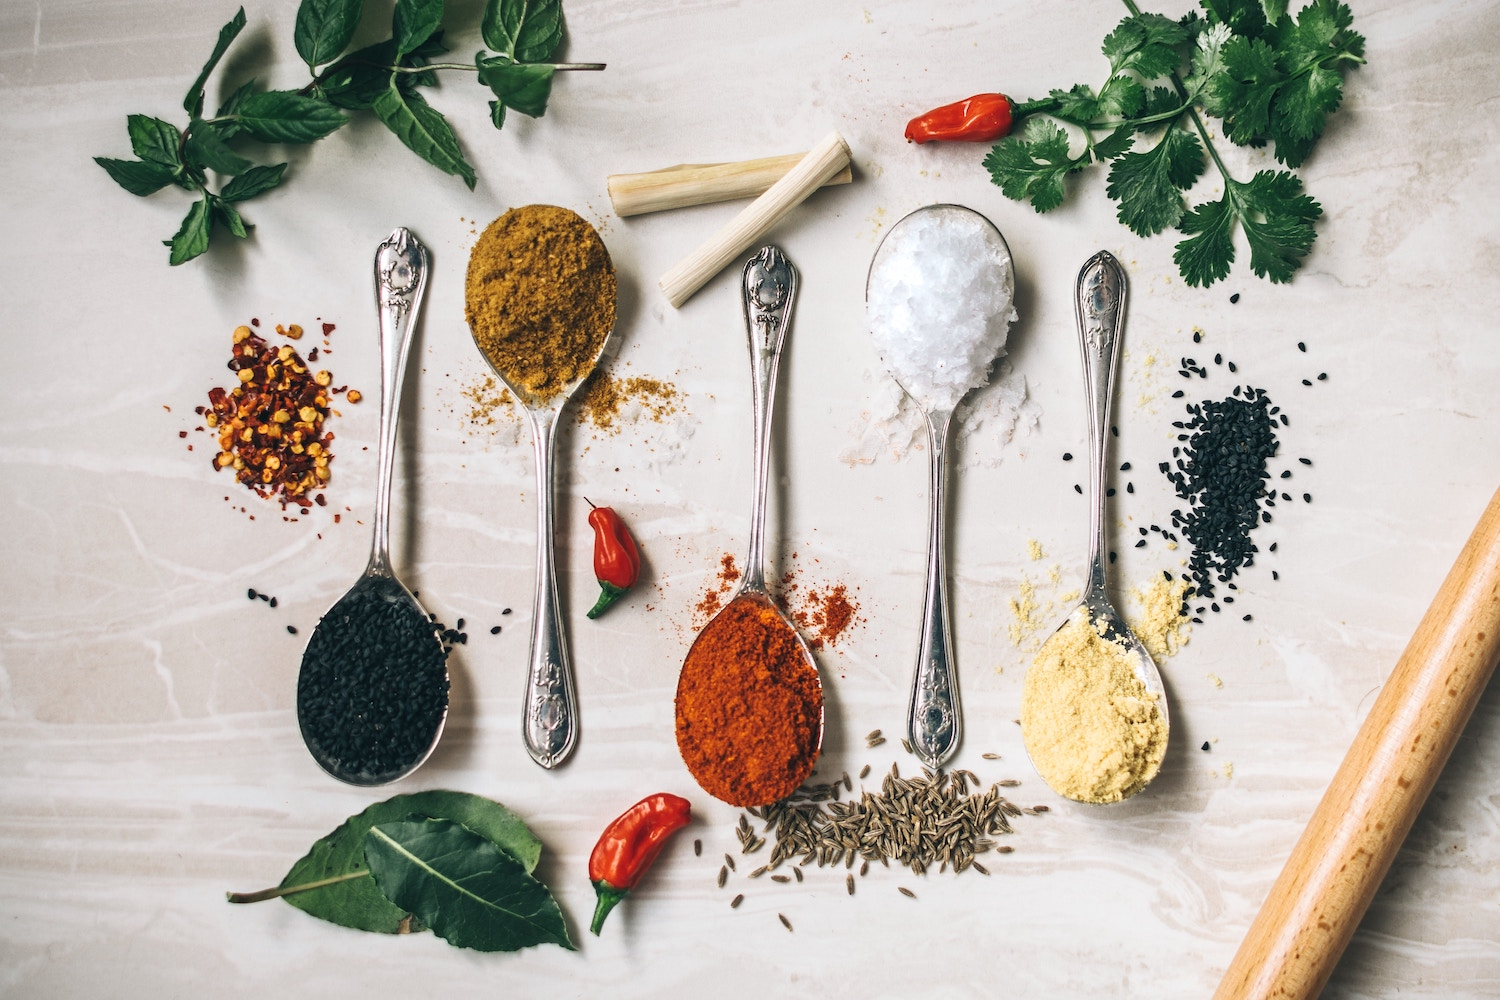 Spices for Healthy Endocannabinoid System